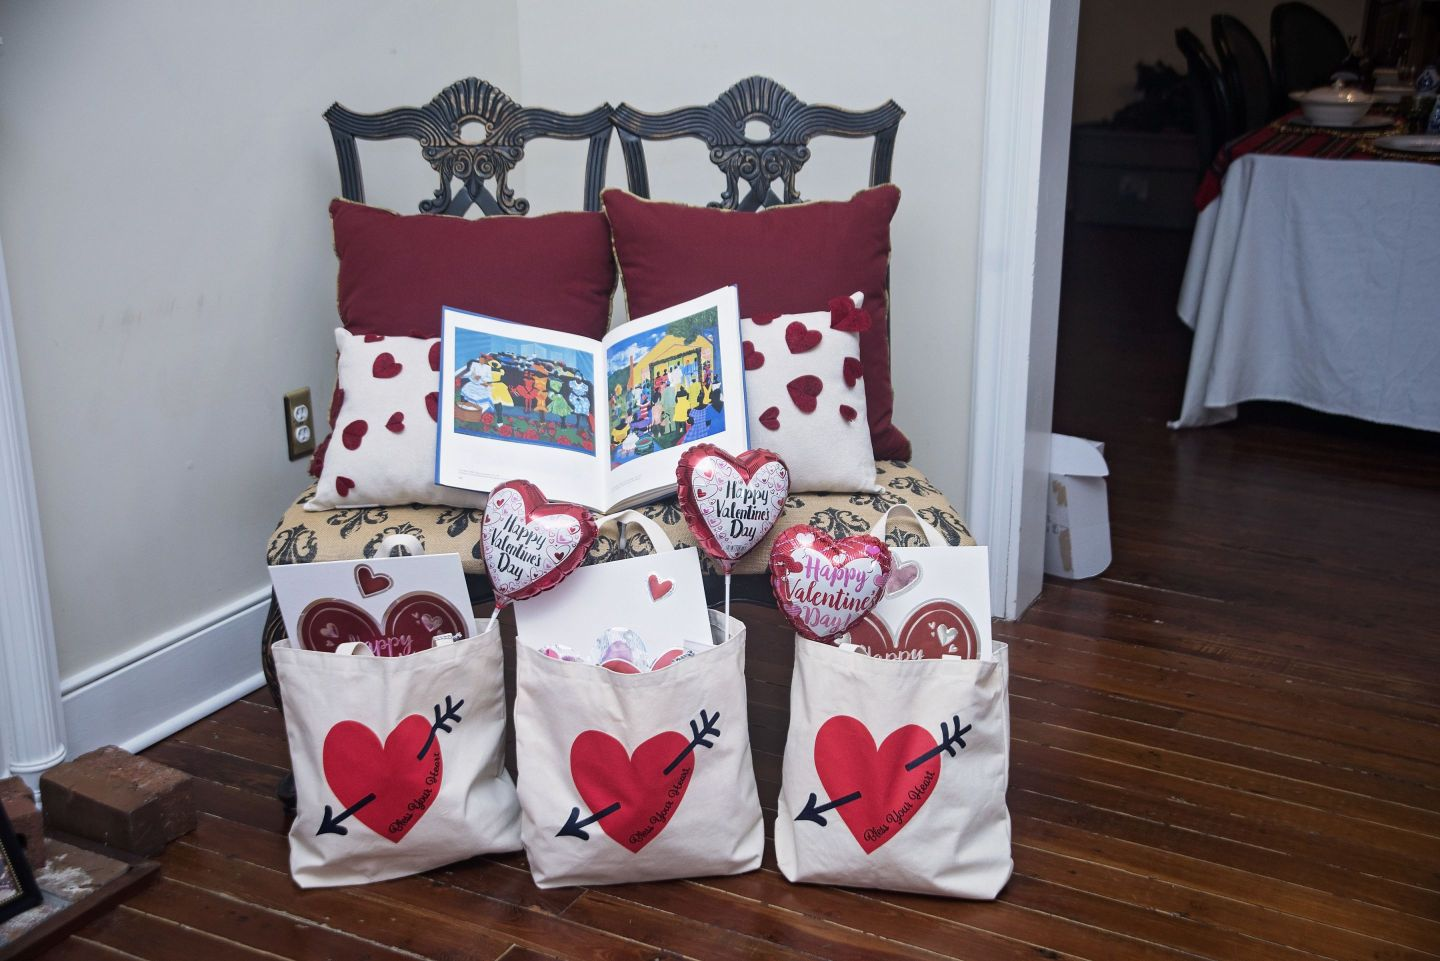 DSC_5429-2-1440x961 Tips for Hosting a Valentine's Day Soiree from Black Southern Belle